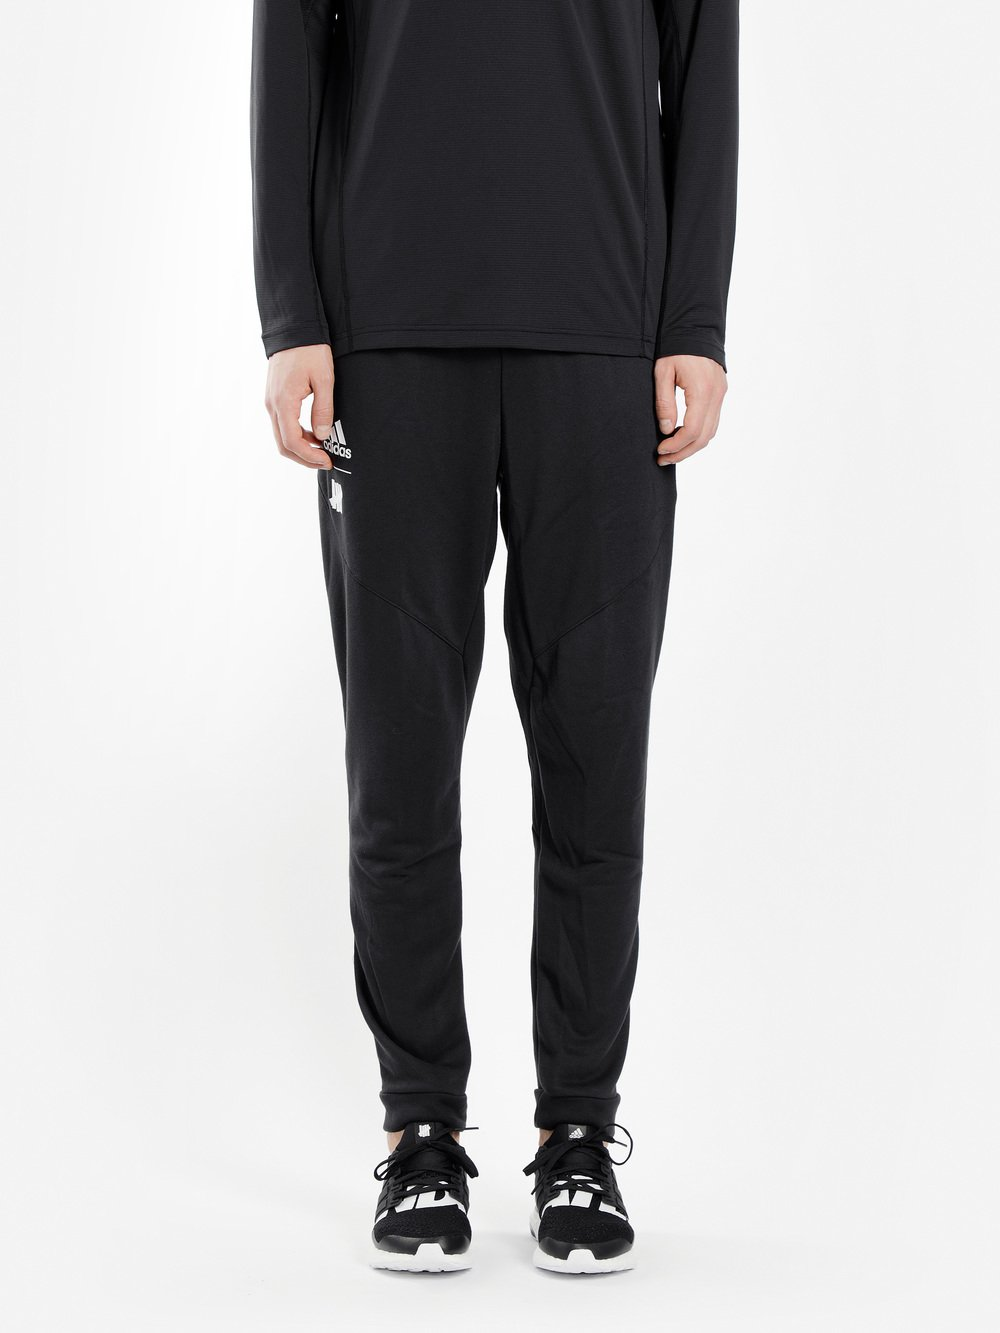 X Trousers Adidas Undefeated Undefeated X Trousers Cz5945